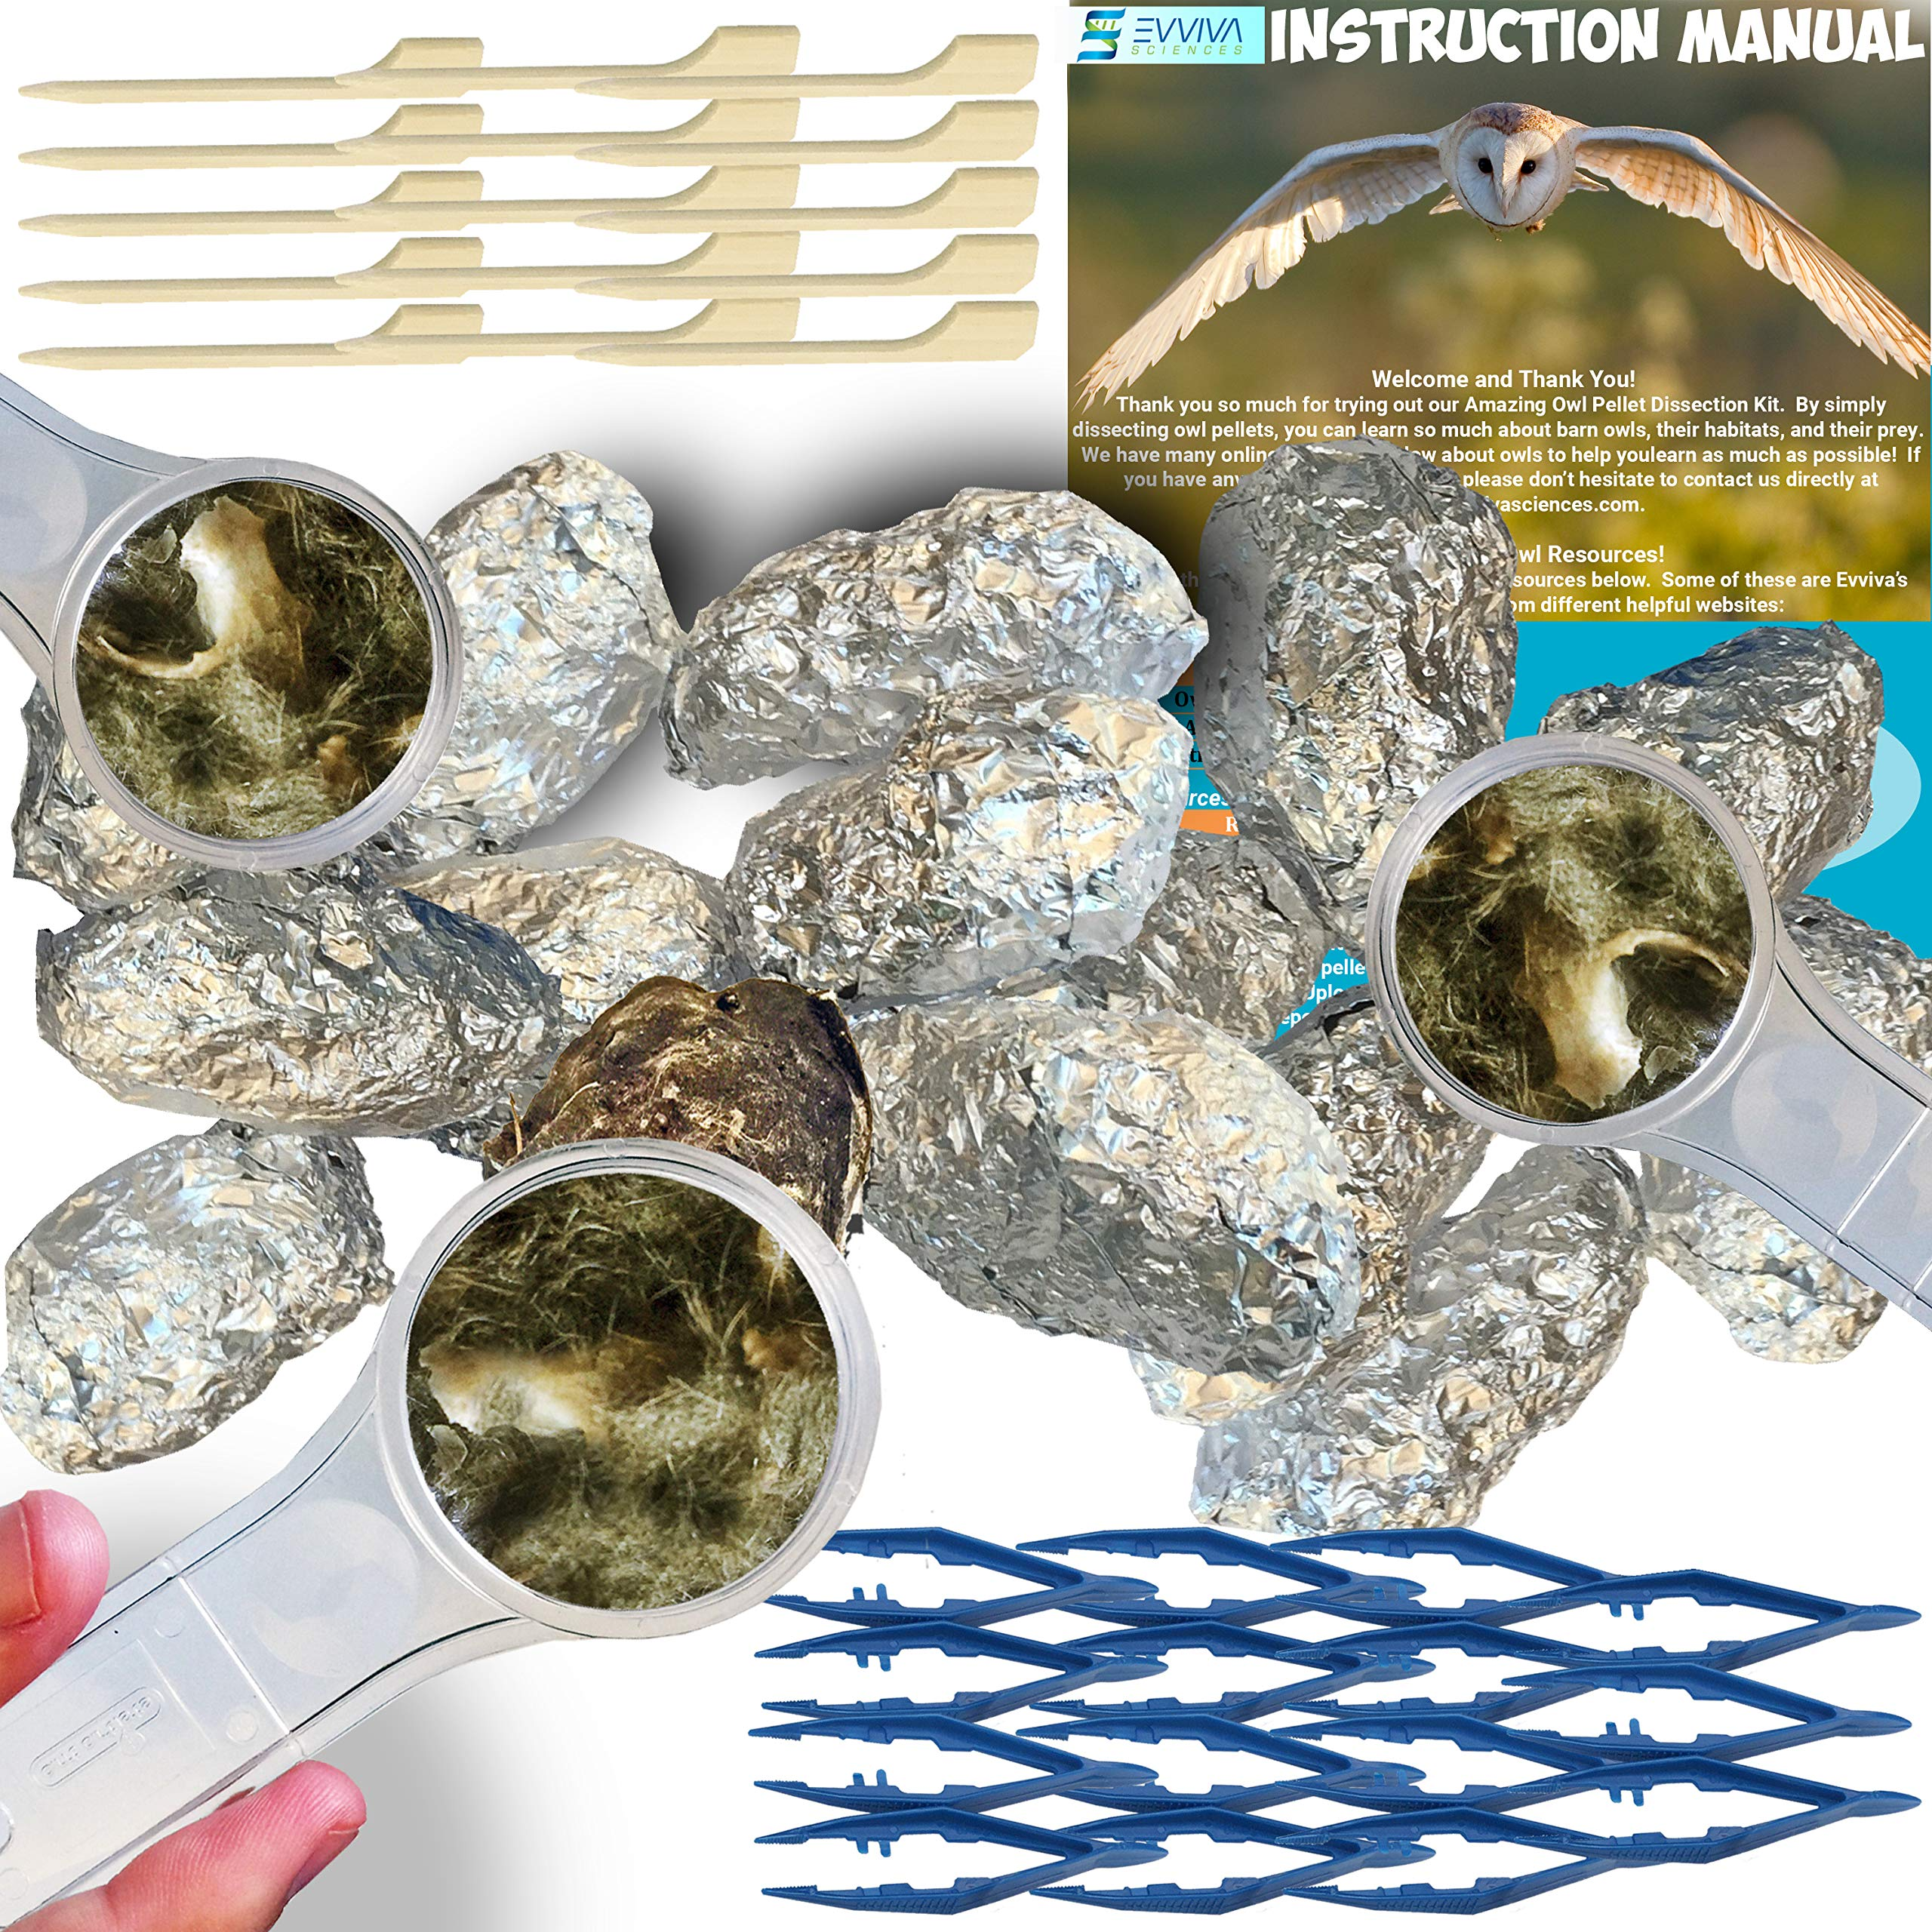 Amazing Owl Pellet Dissection Kit - 15-Piece Owl Pellet Set for Science Lab Projects - w/Tweezers, Magnifying Glasses and Wooden Probes - Ideal for Kids, Class Projects - Bonus Barn Owl eBook ...